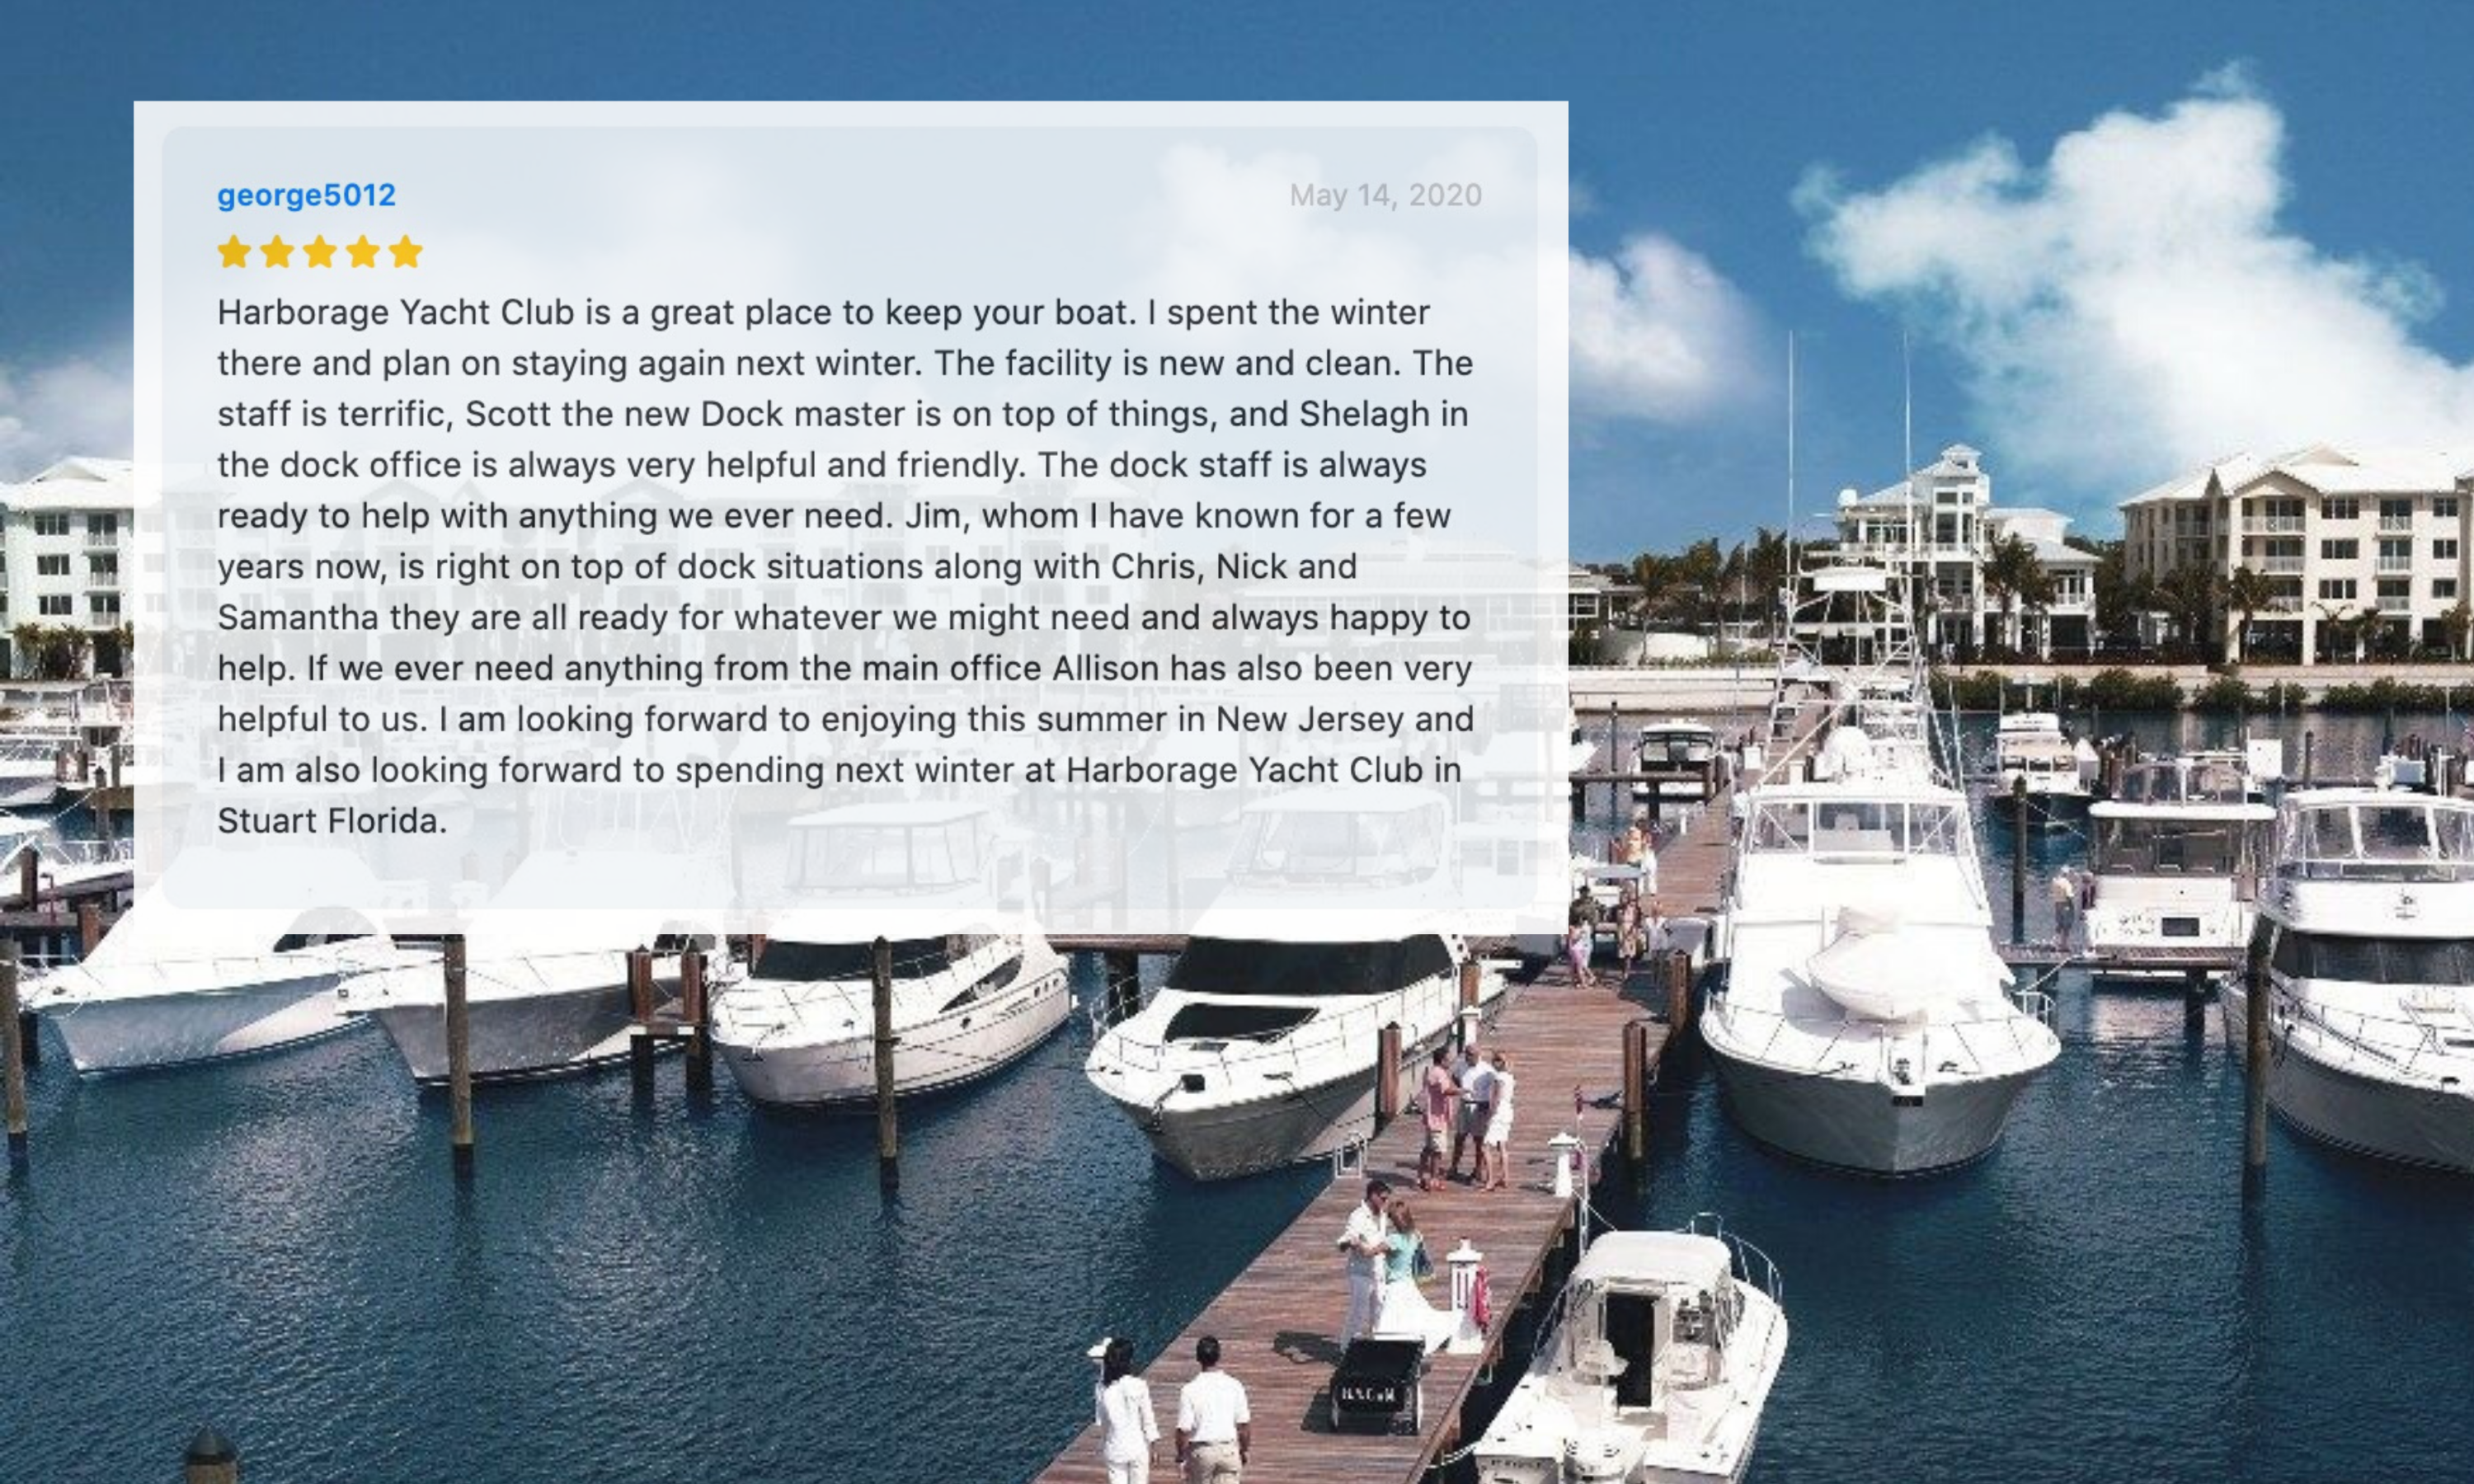 What makes a great marina review?